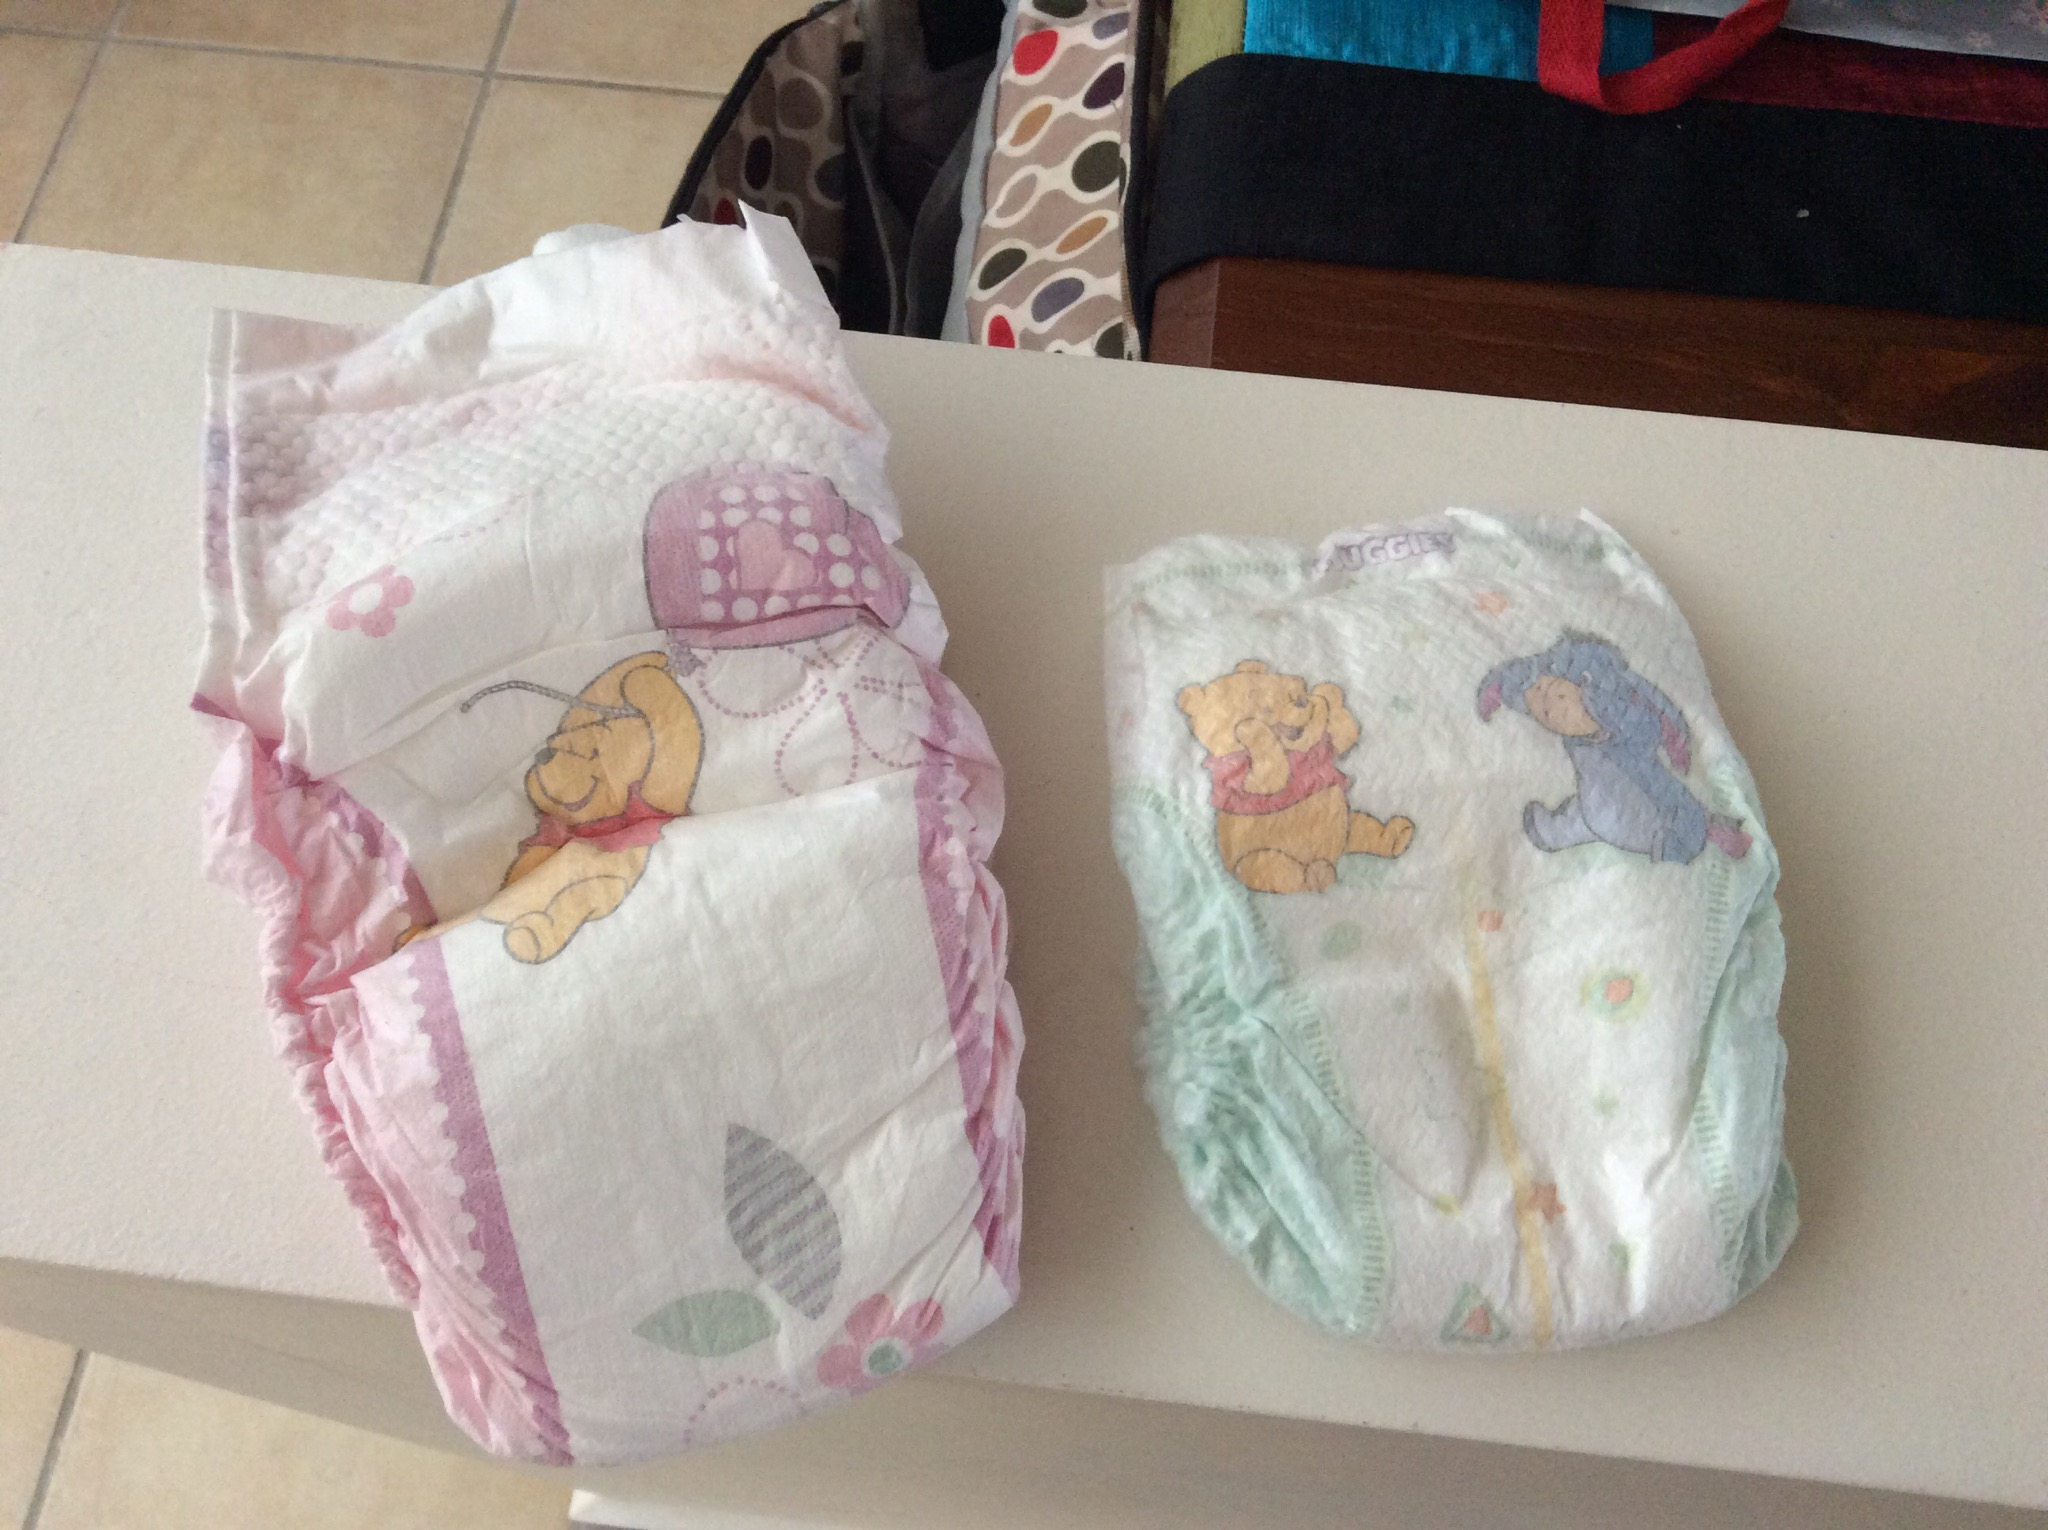 Comparing newborn diaper to Junior girls's diaper